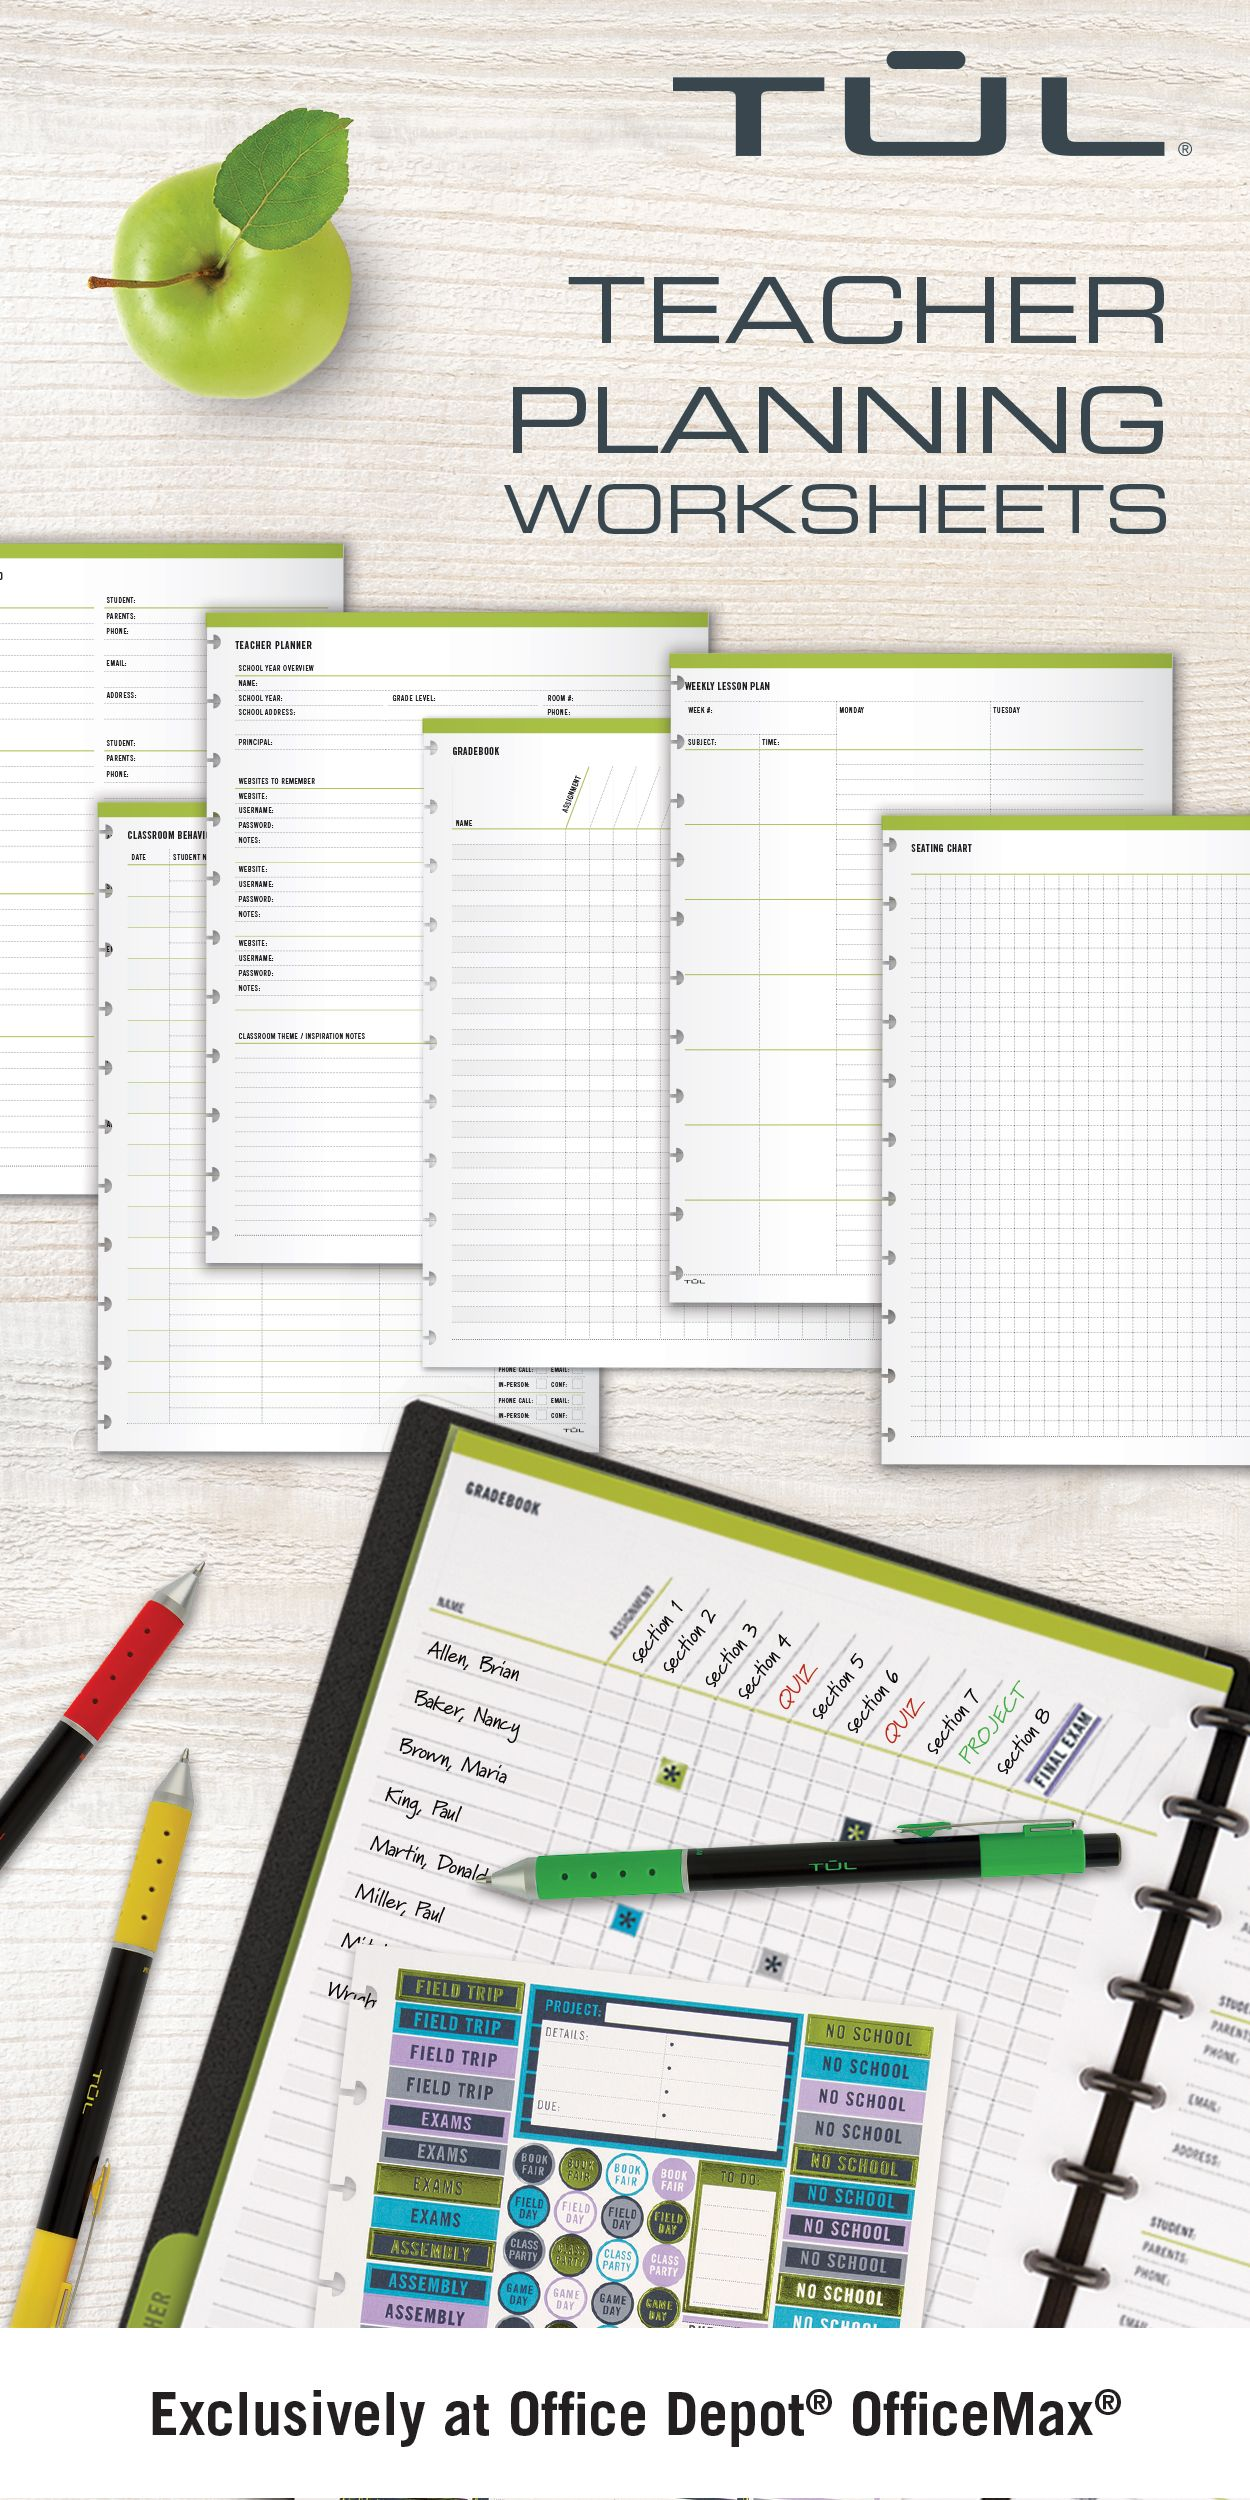 Simplify Your Teacher Planning Tasks With The Help Of The